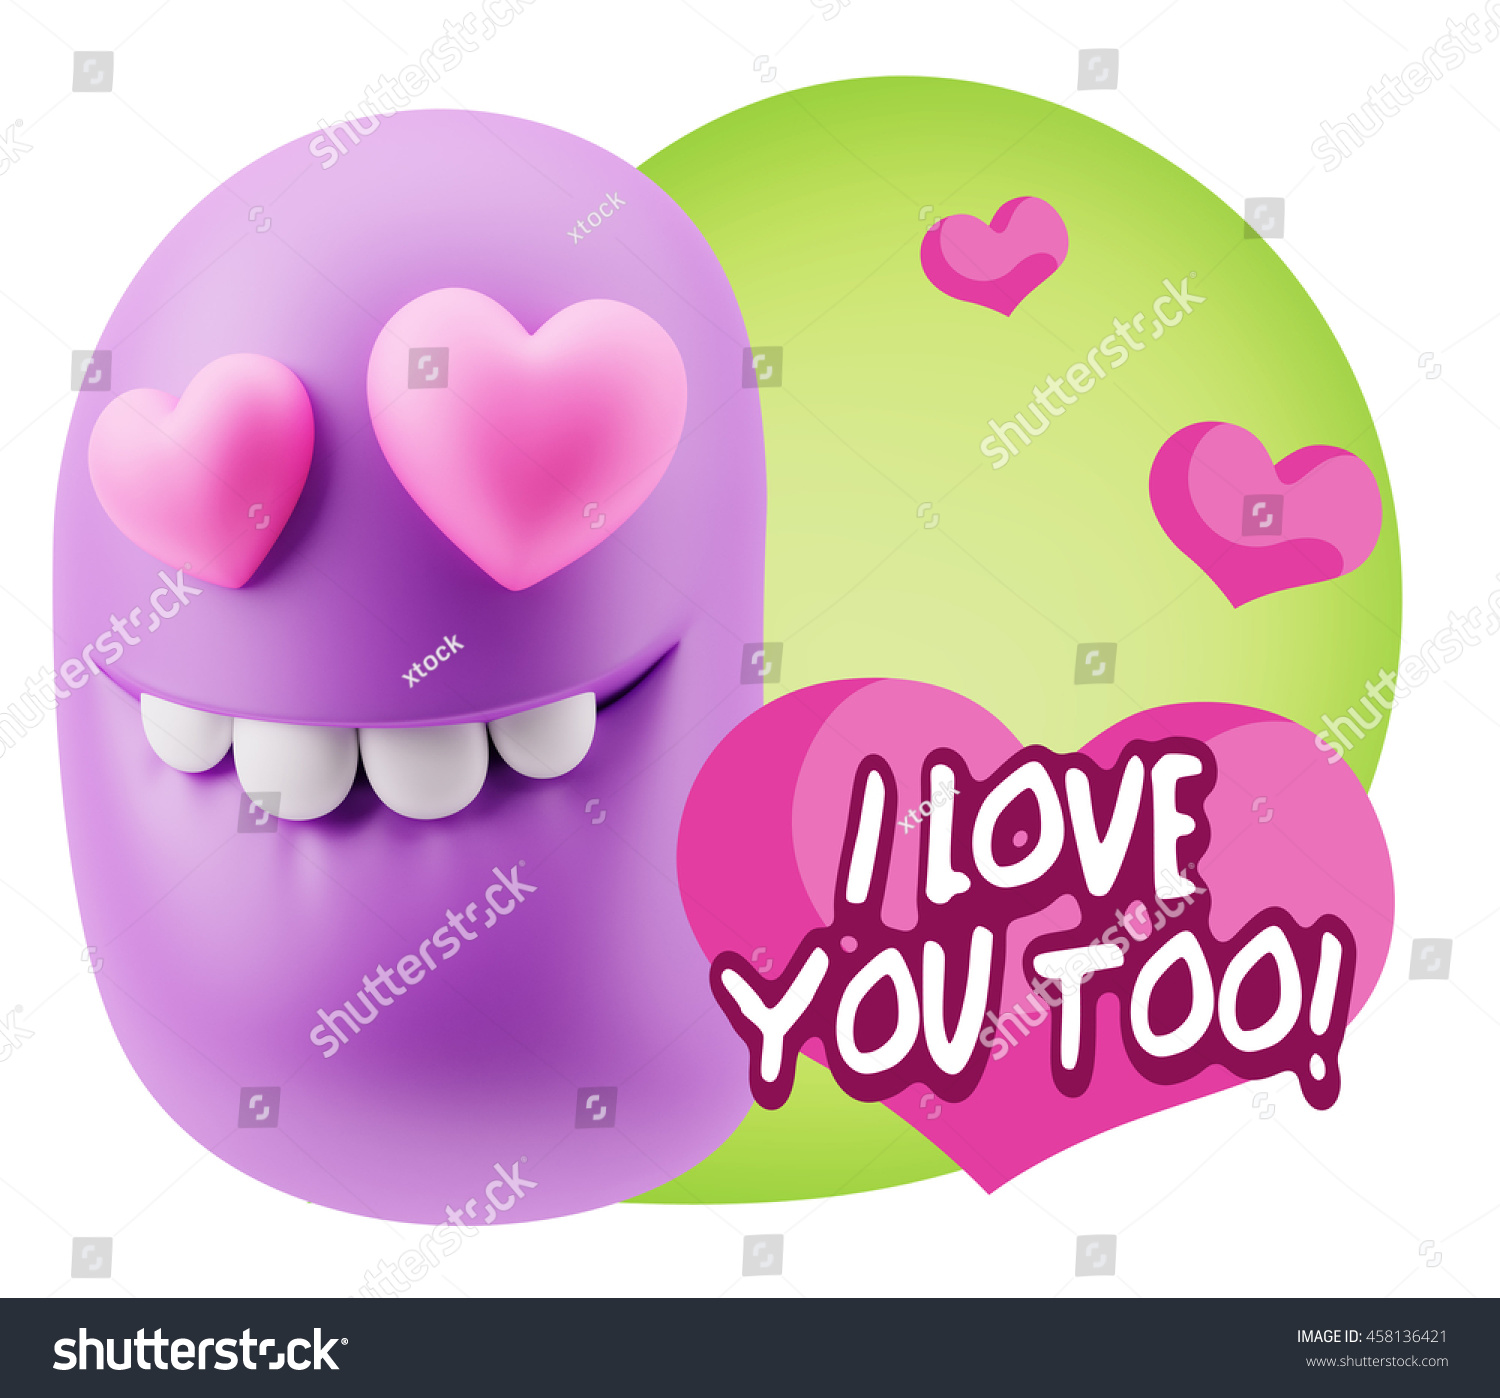 3d rendering emoji saying love you stock illustration 458136421 emoji saying i love you too with colorful speech bubble thecheapjerseys Gallery